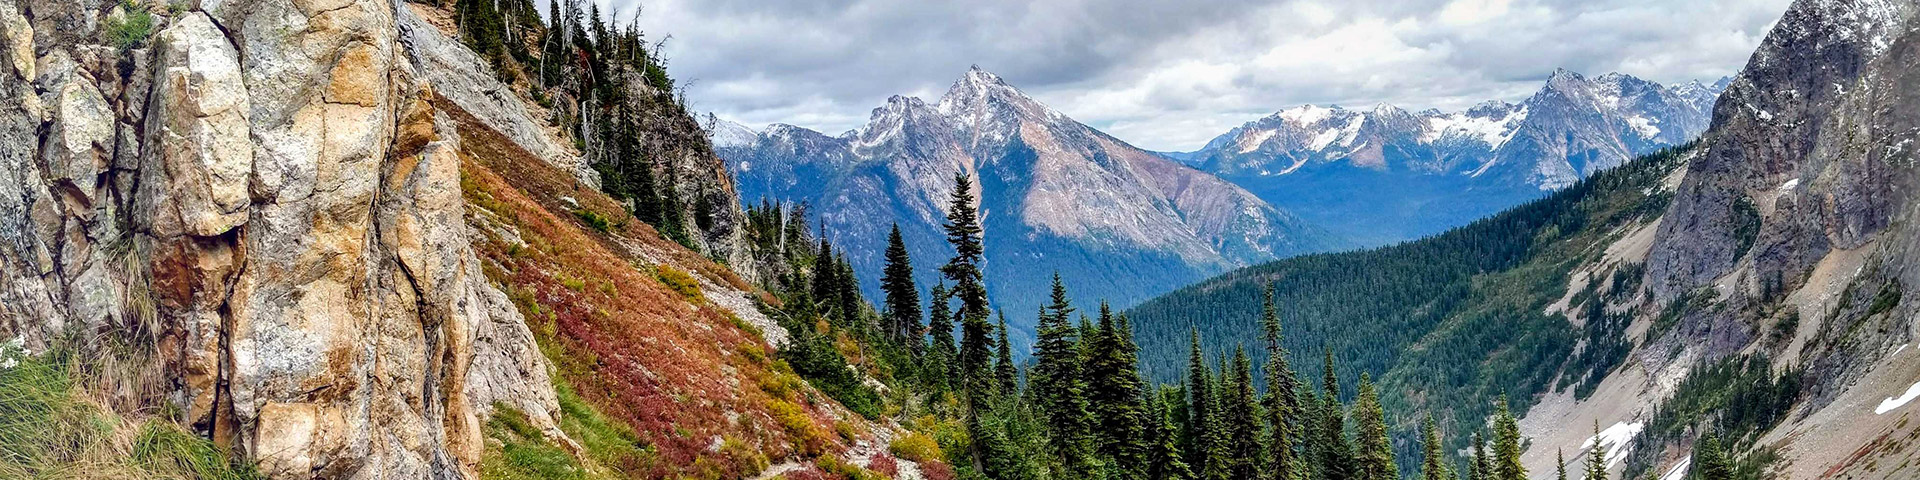 Easy Pass hike in North Cascades National Park